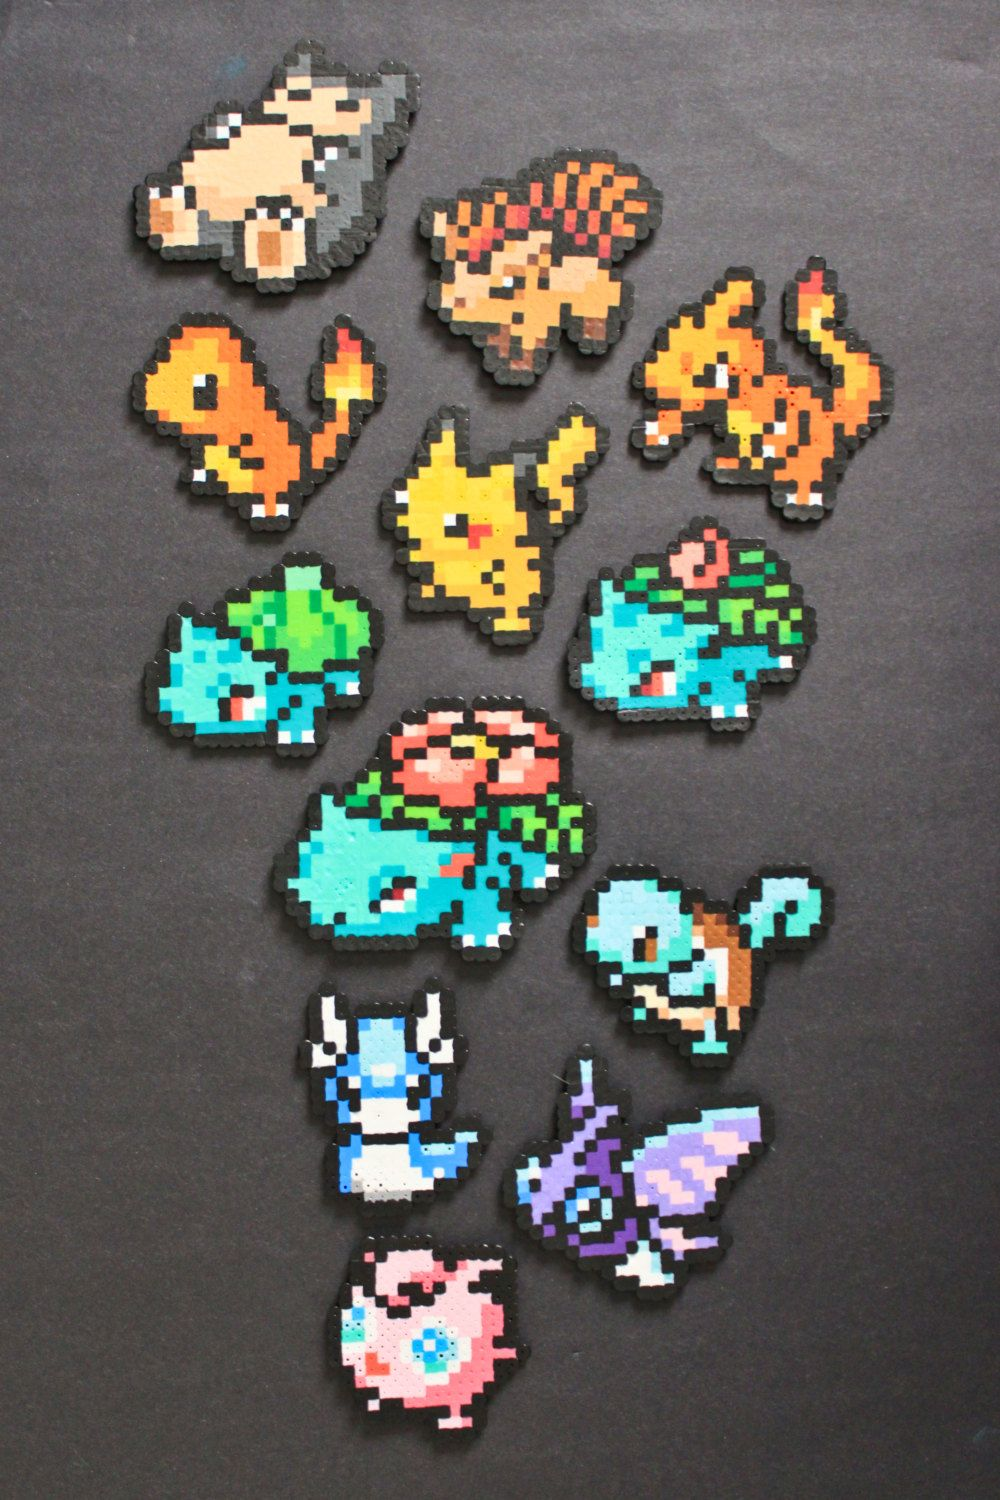 Pokemon Perler Bead Pixel Art Magnets Gold Bügelperlen